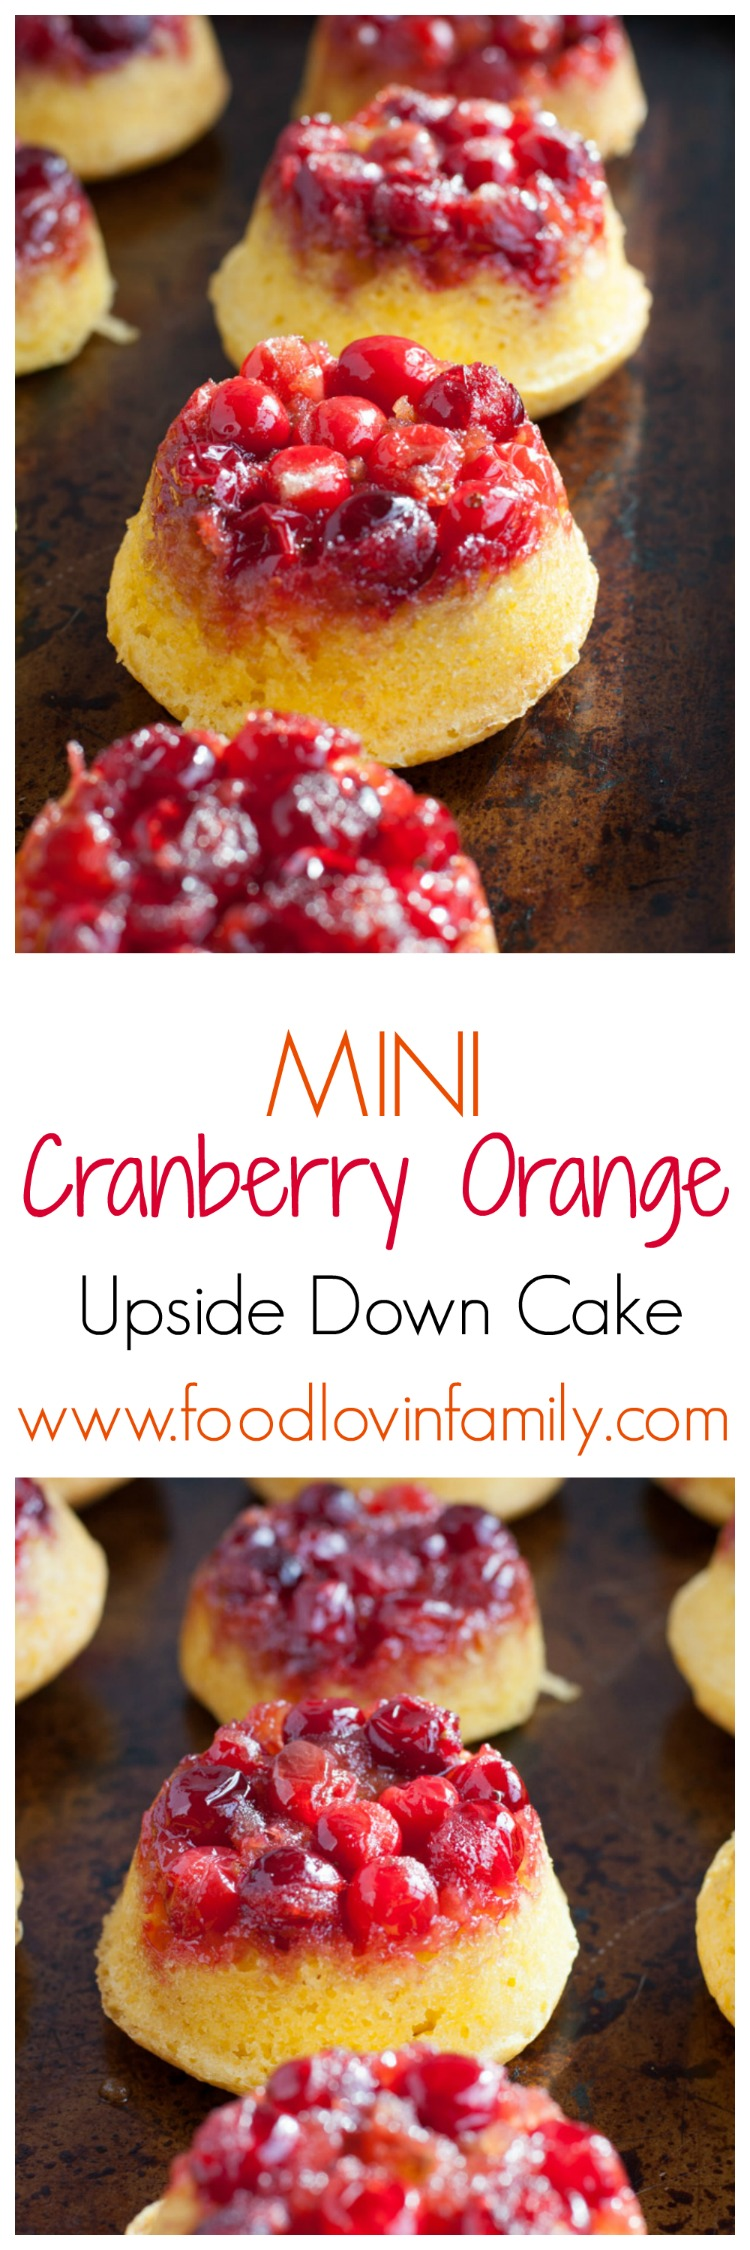 Mini cranberry orange upside down cakes are great for a party or holiday gathering. Made with fresh or frozen cranberries, brown sugar, butter and an orange cake.